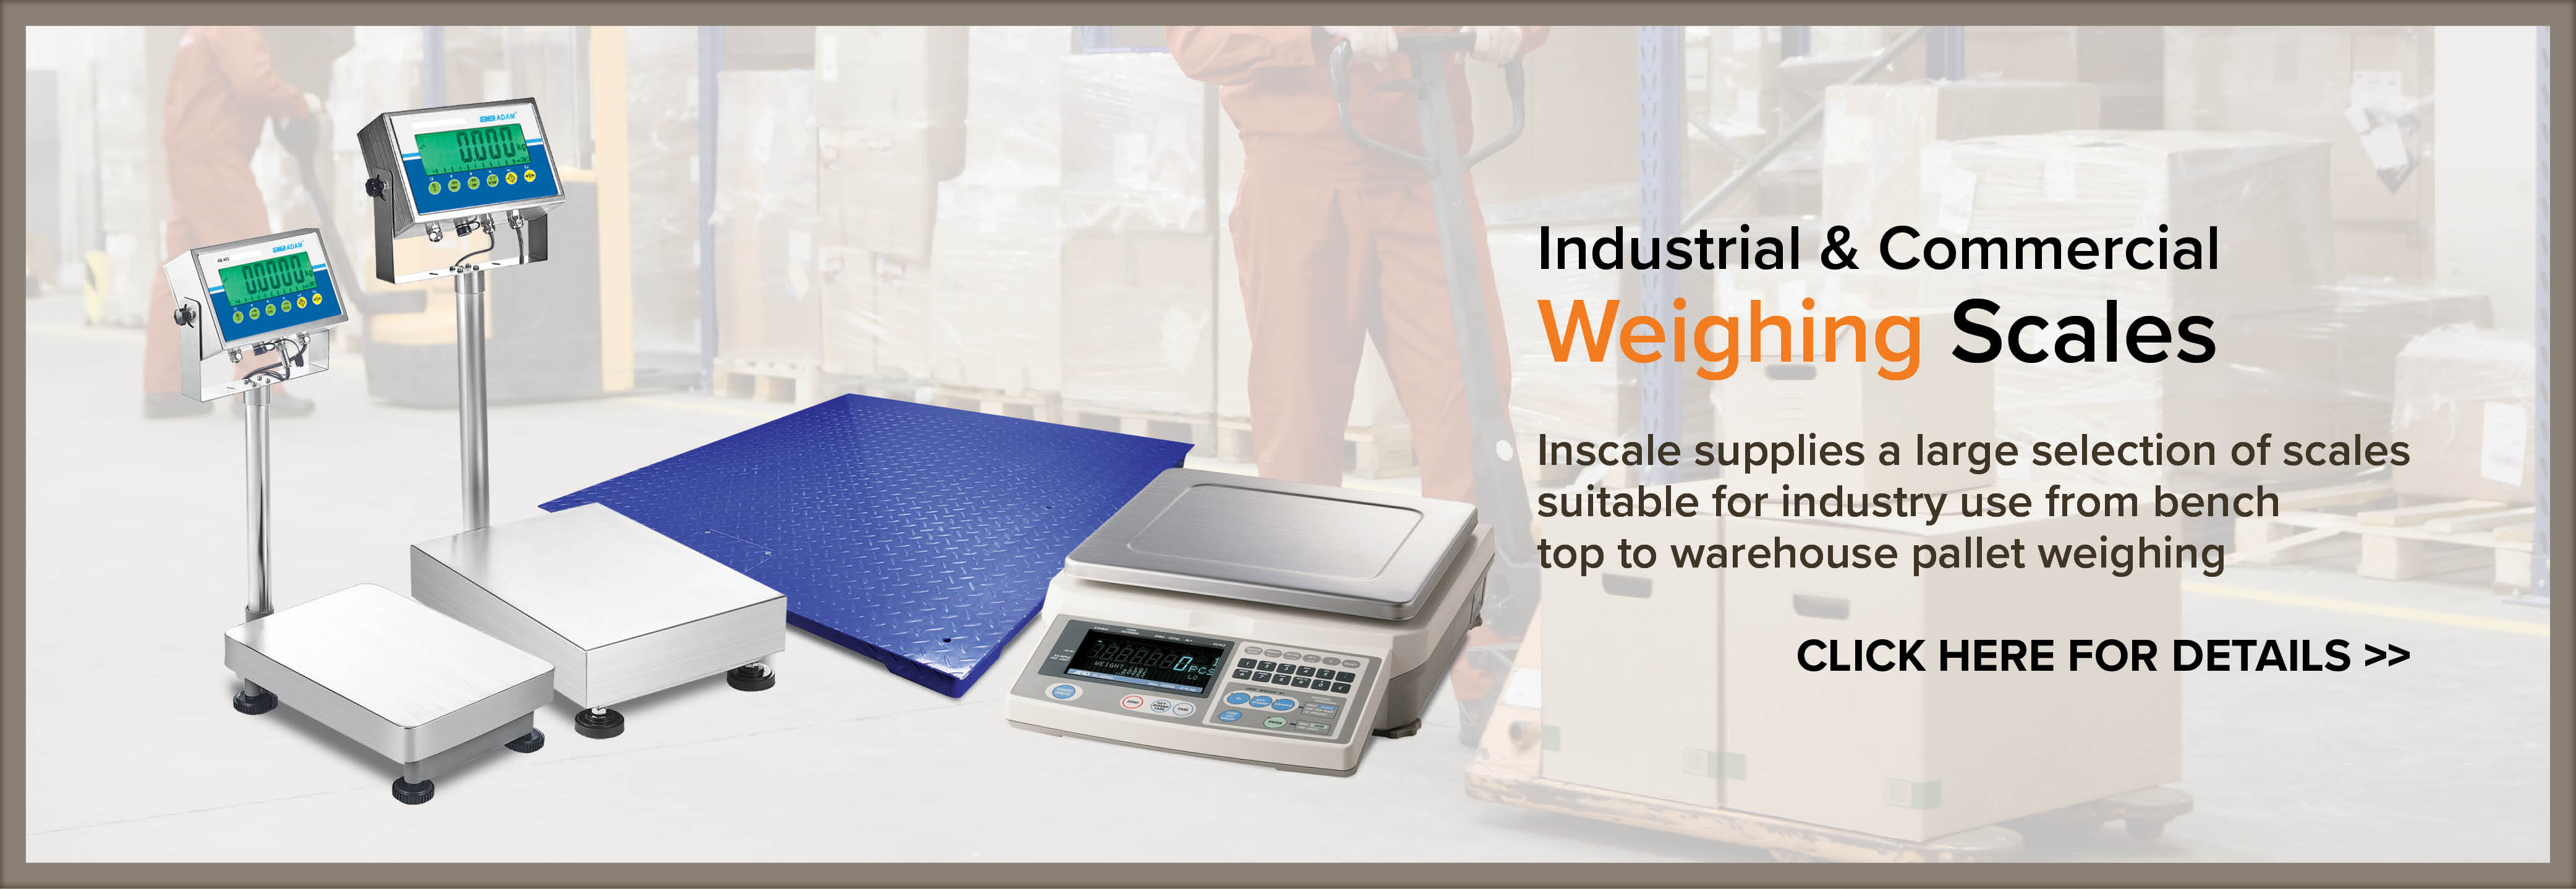 Industrial & Commercial Weighing Scales - Click Here for Details